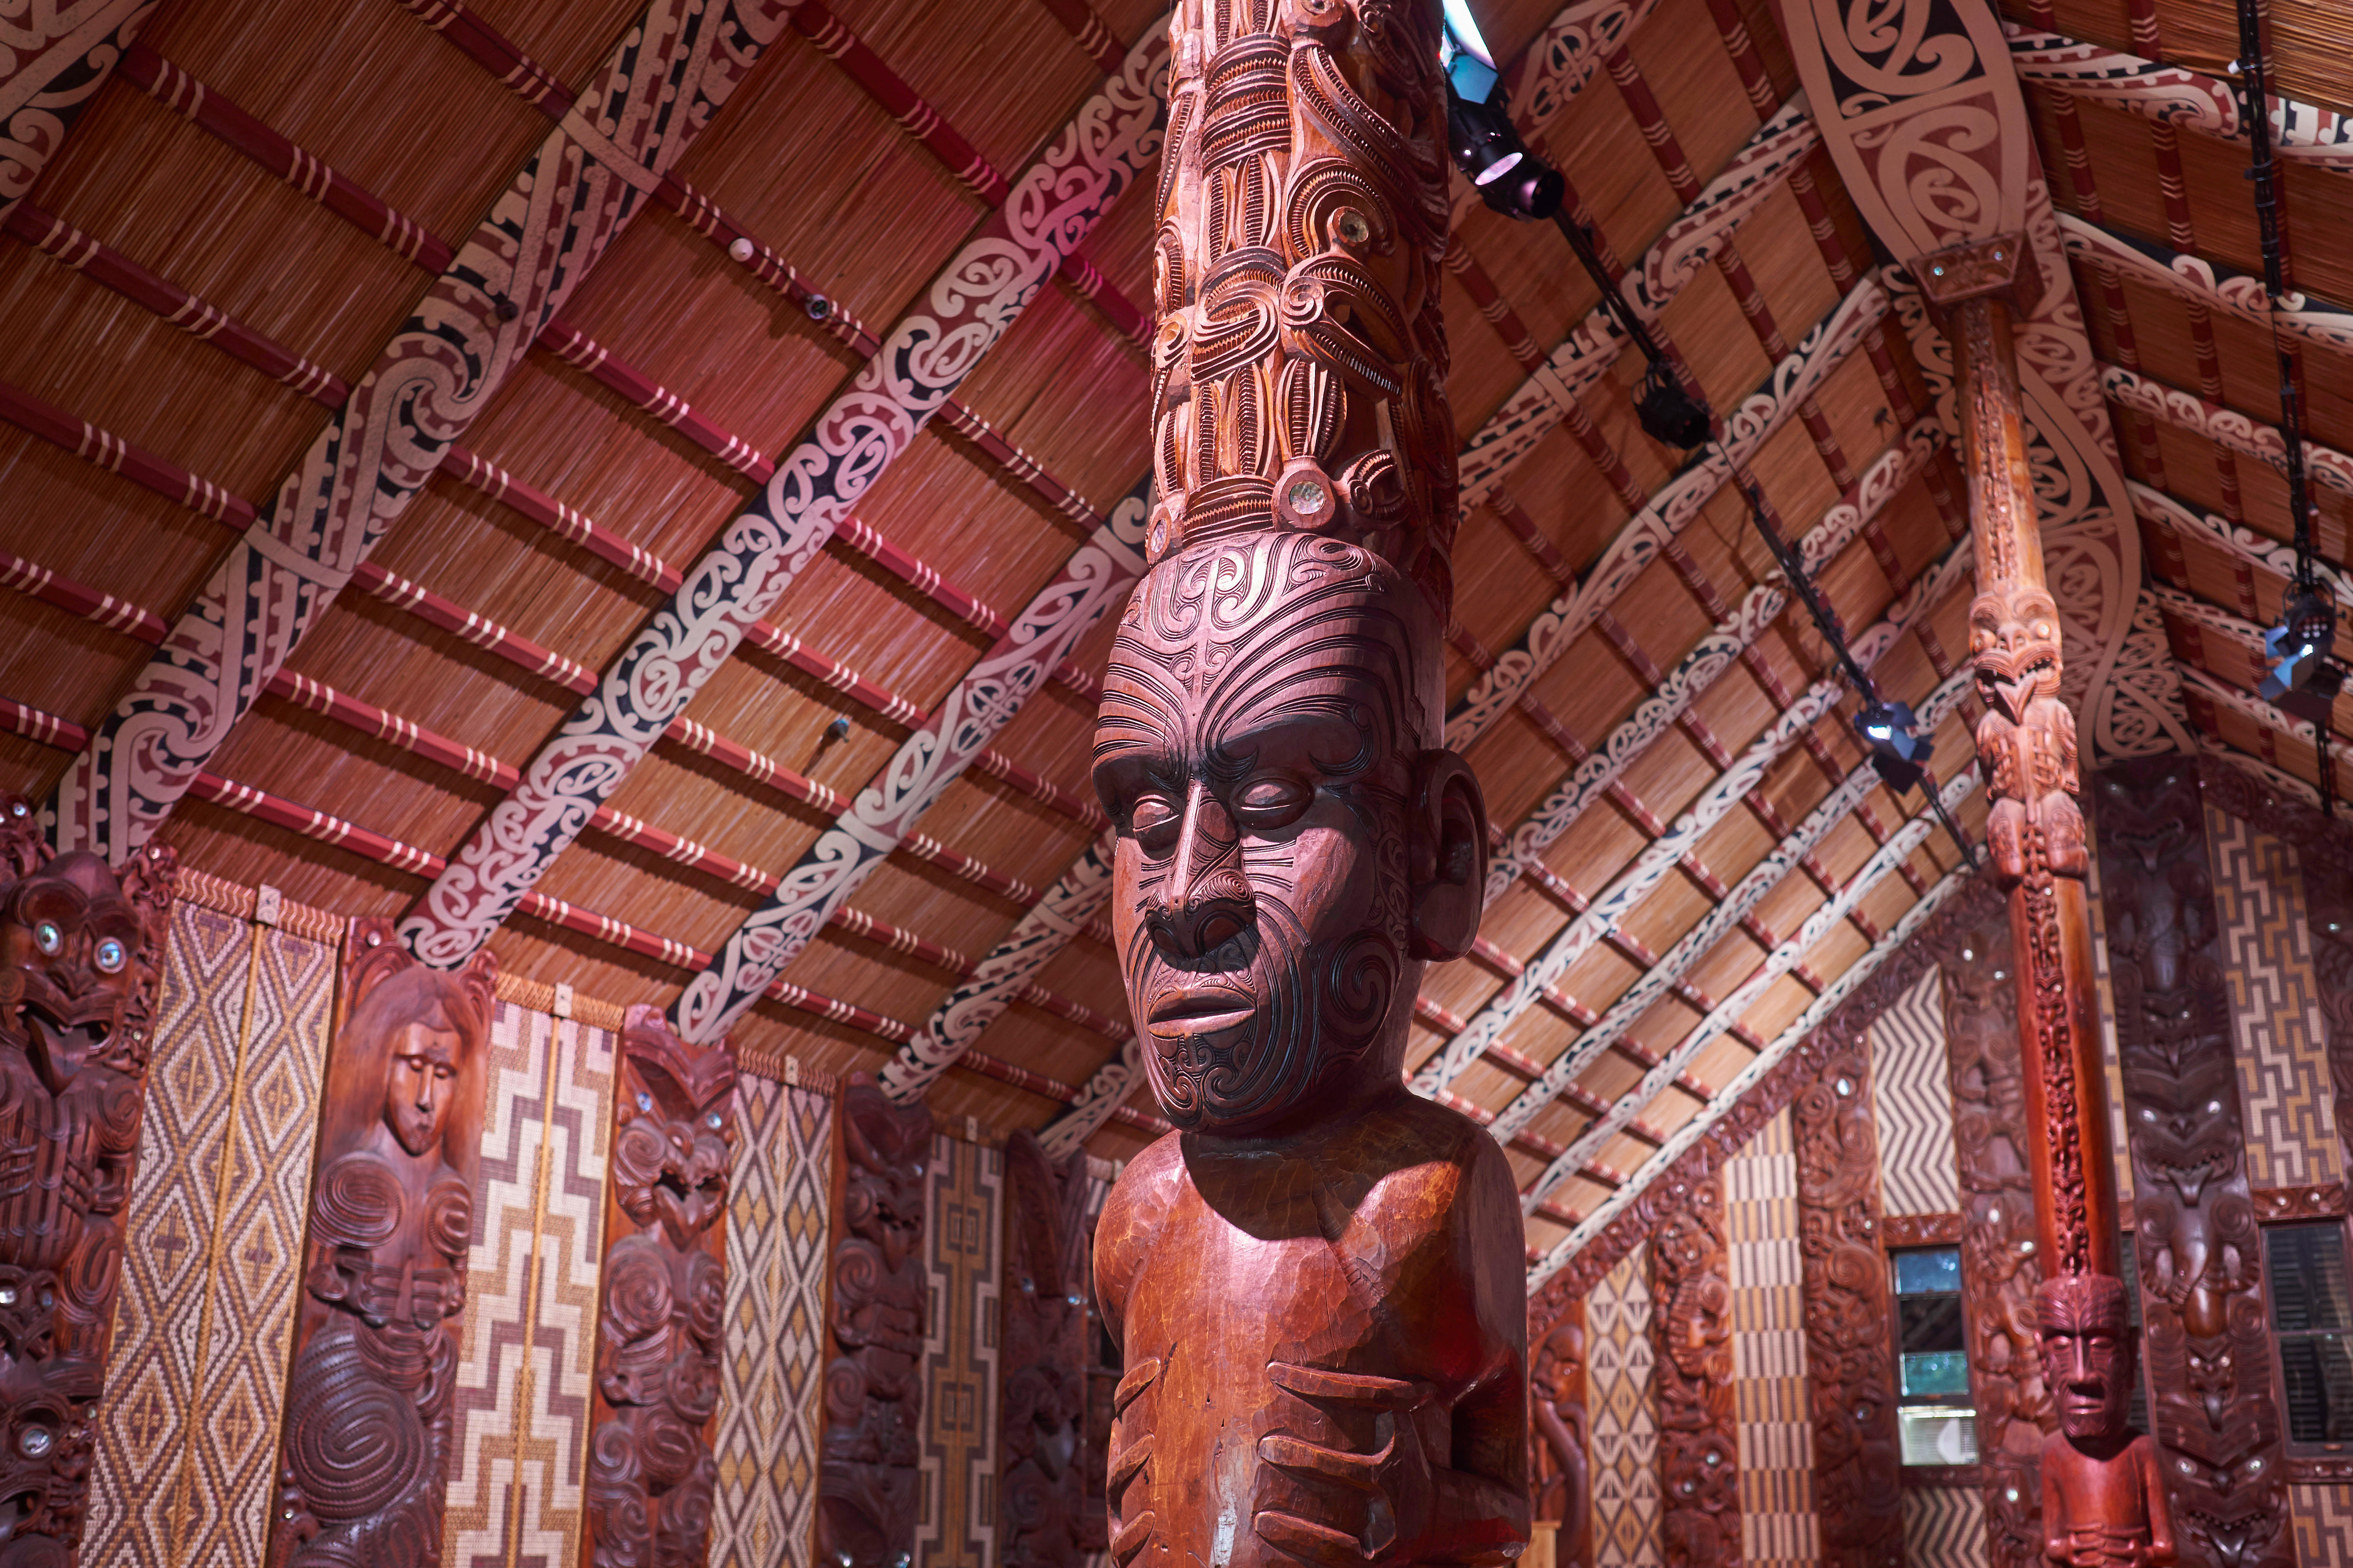 Maori meeting house with traditional carved interior, the national marae at the Waitangi Treaty Grounds in New Zealand